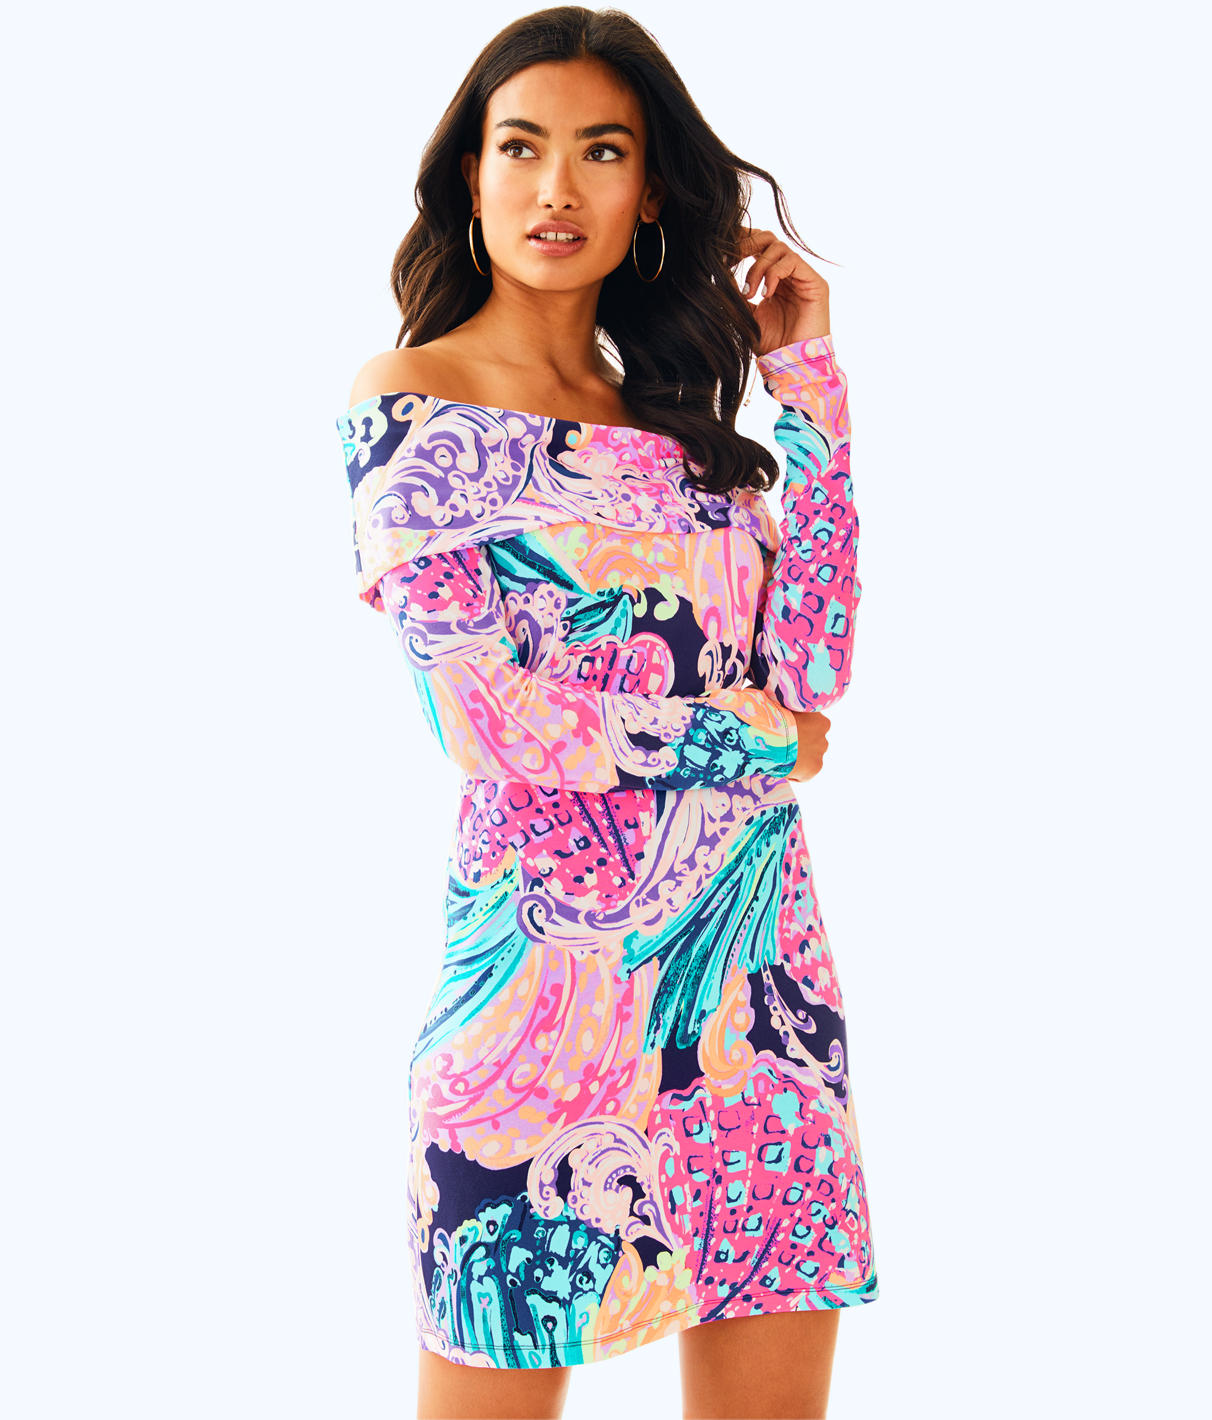 Lilly Pulitzer Trisha Dress